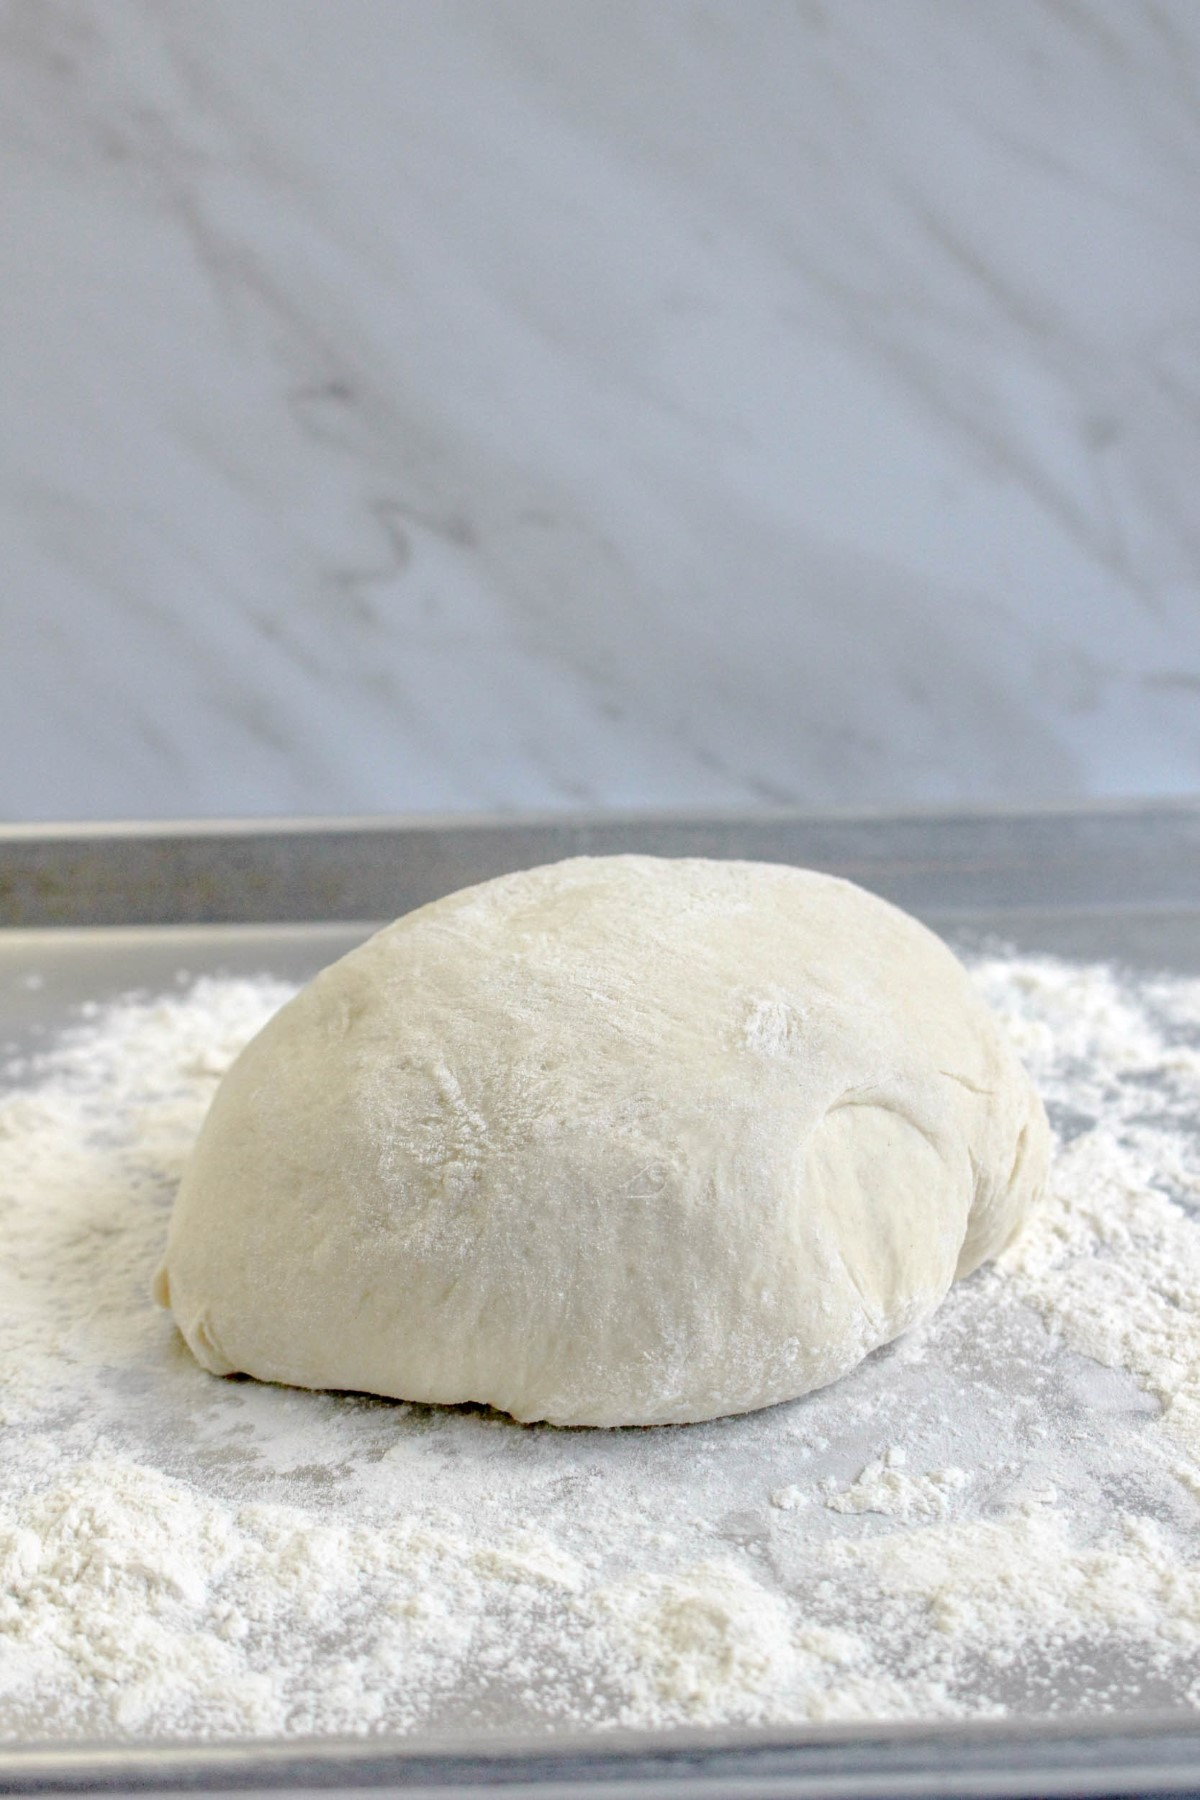 Pizza dough in a ball, resting on a floured surface